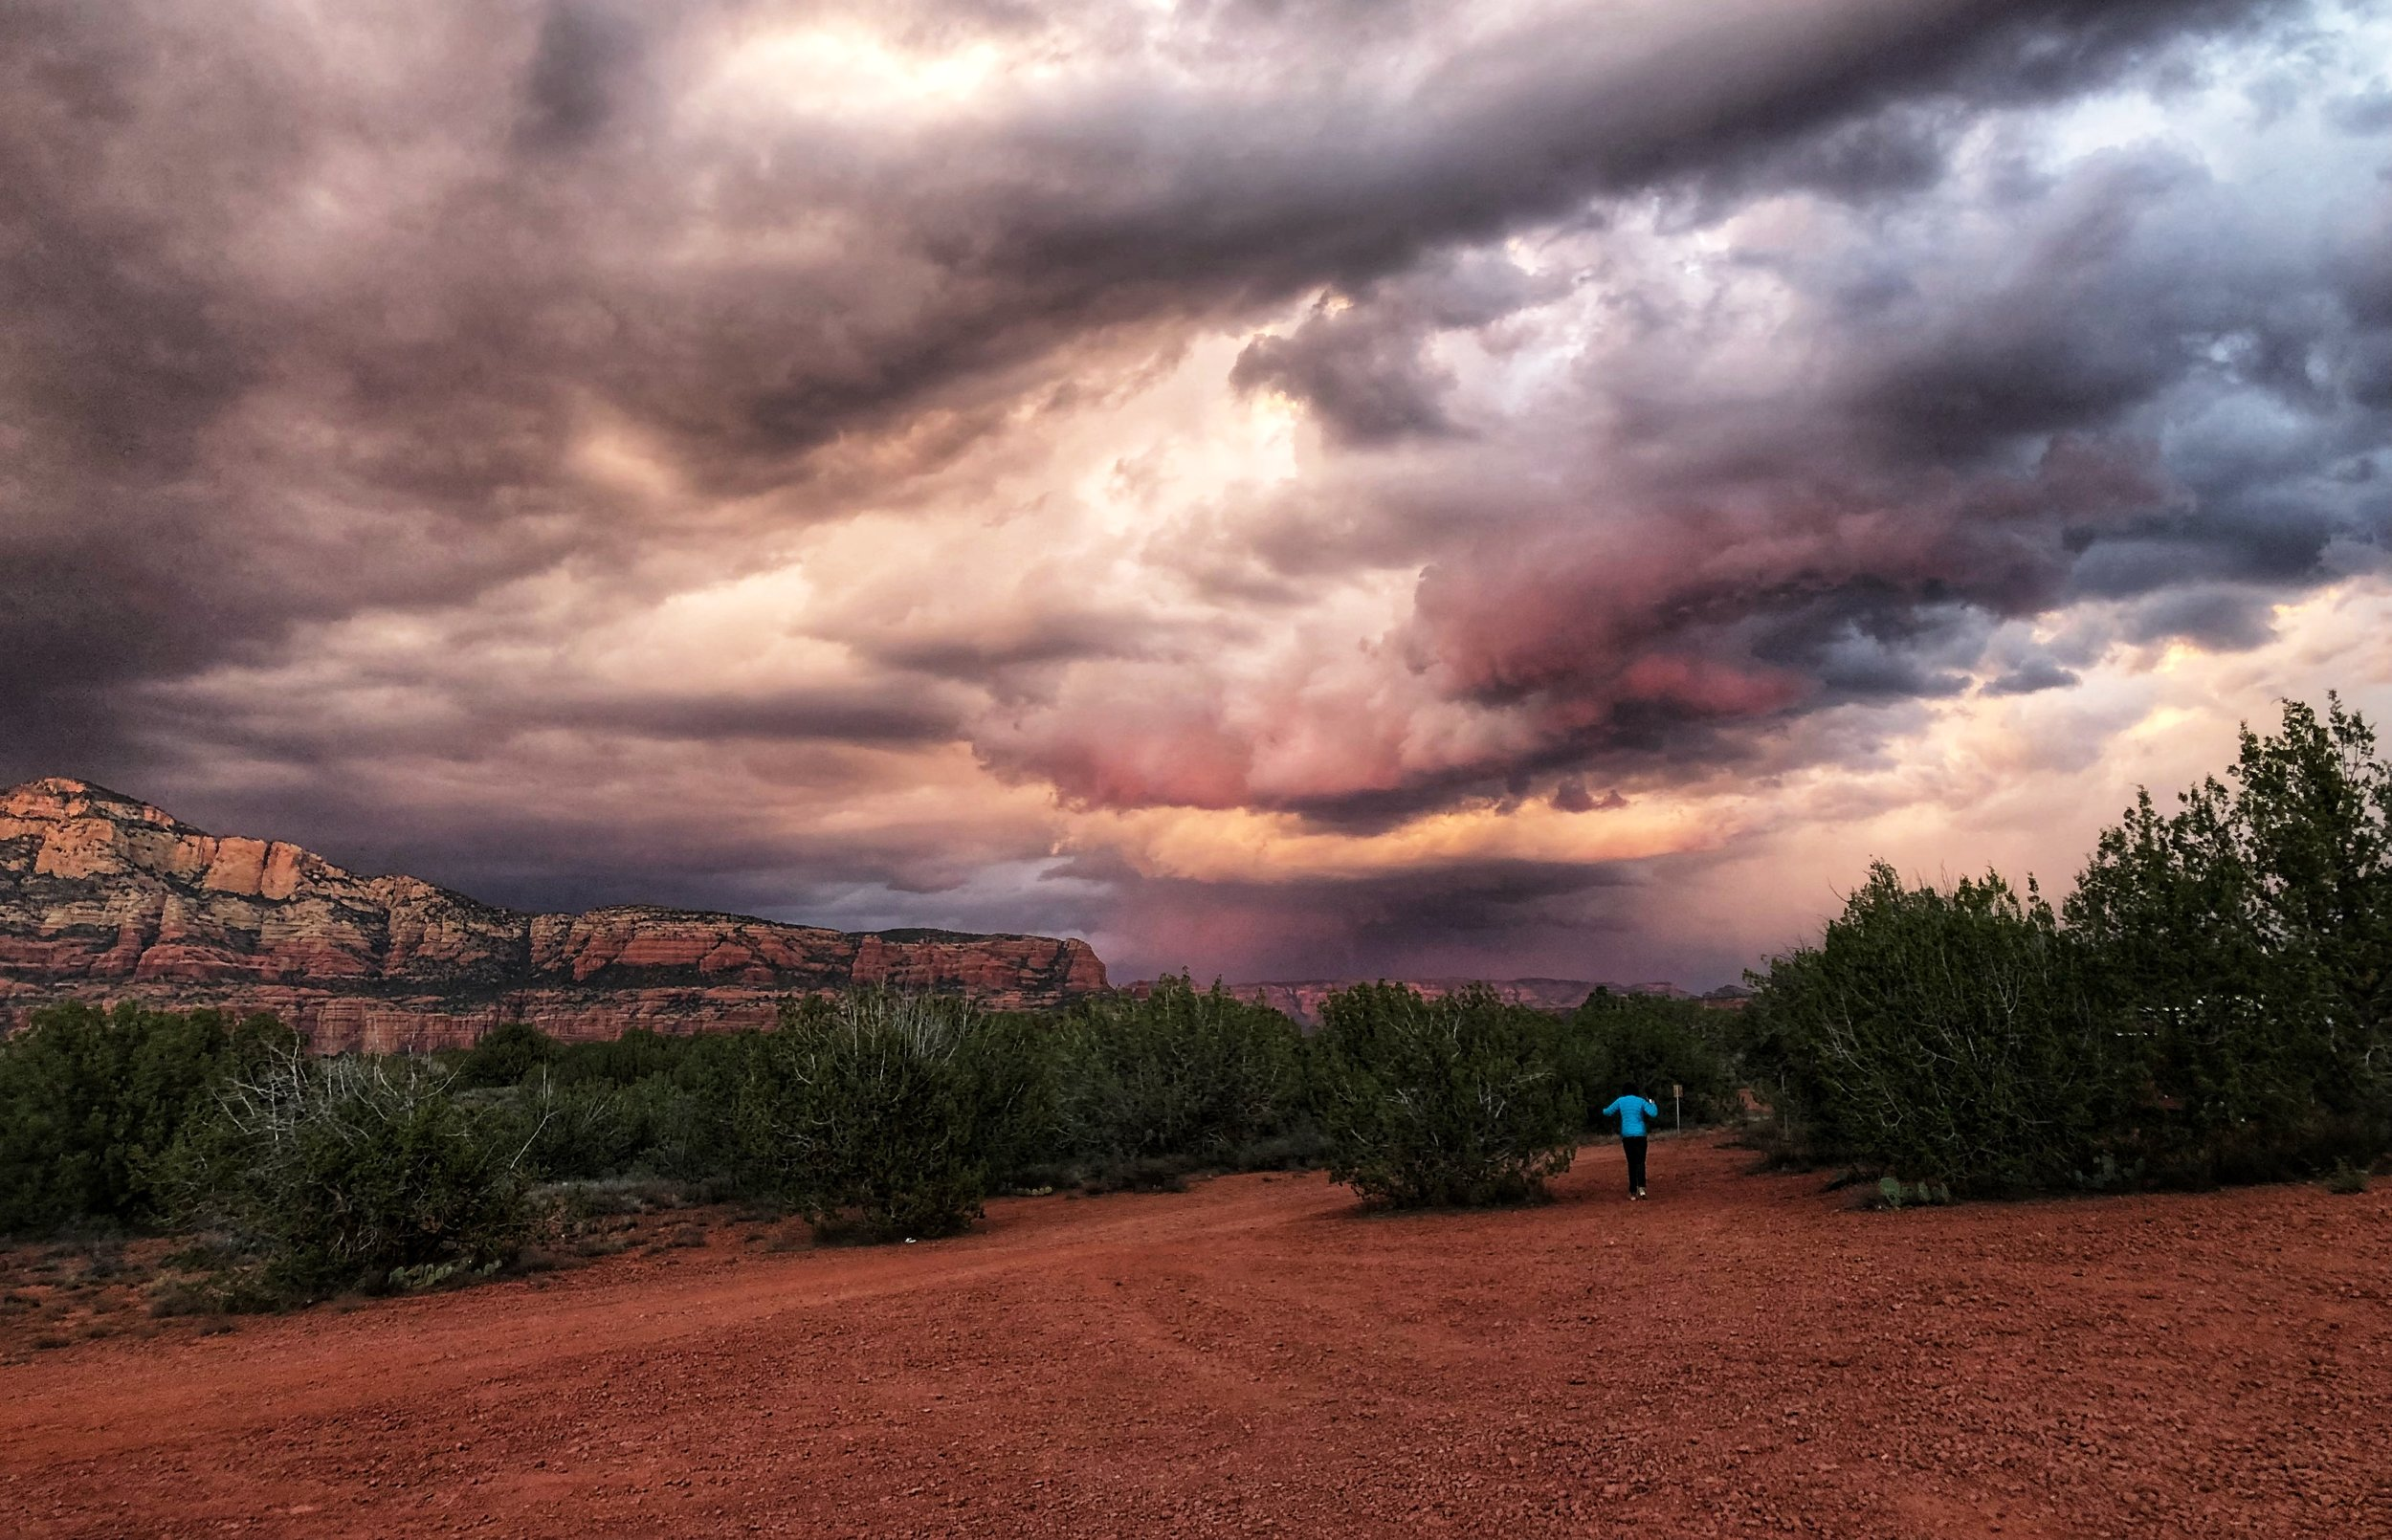 Gorgeous stormy sky from camp on our first night in Sedona.